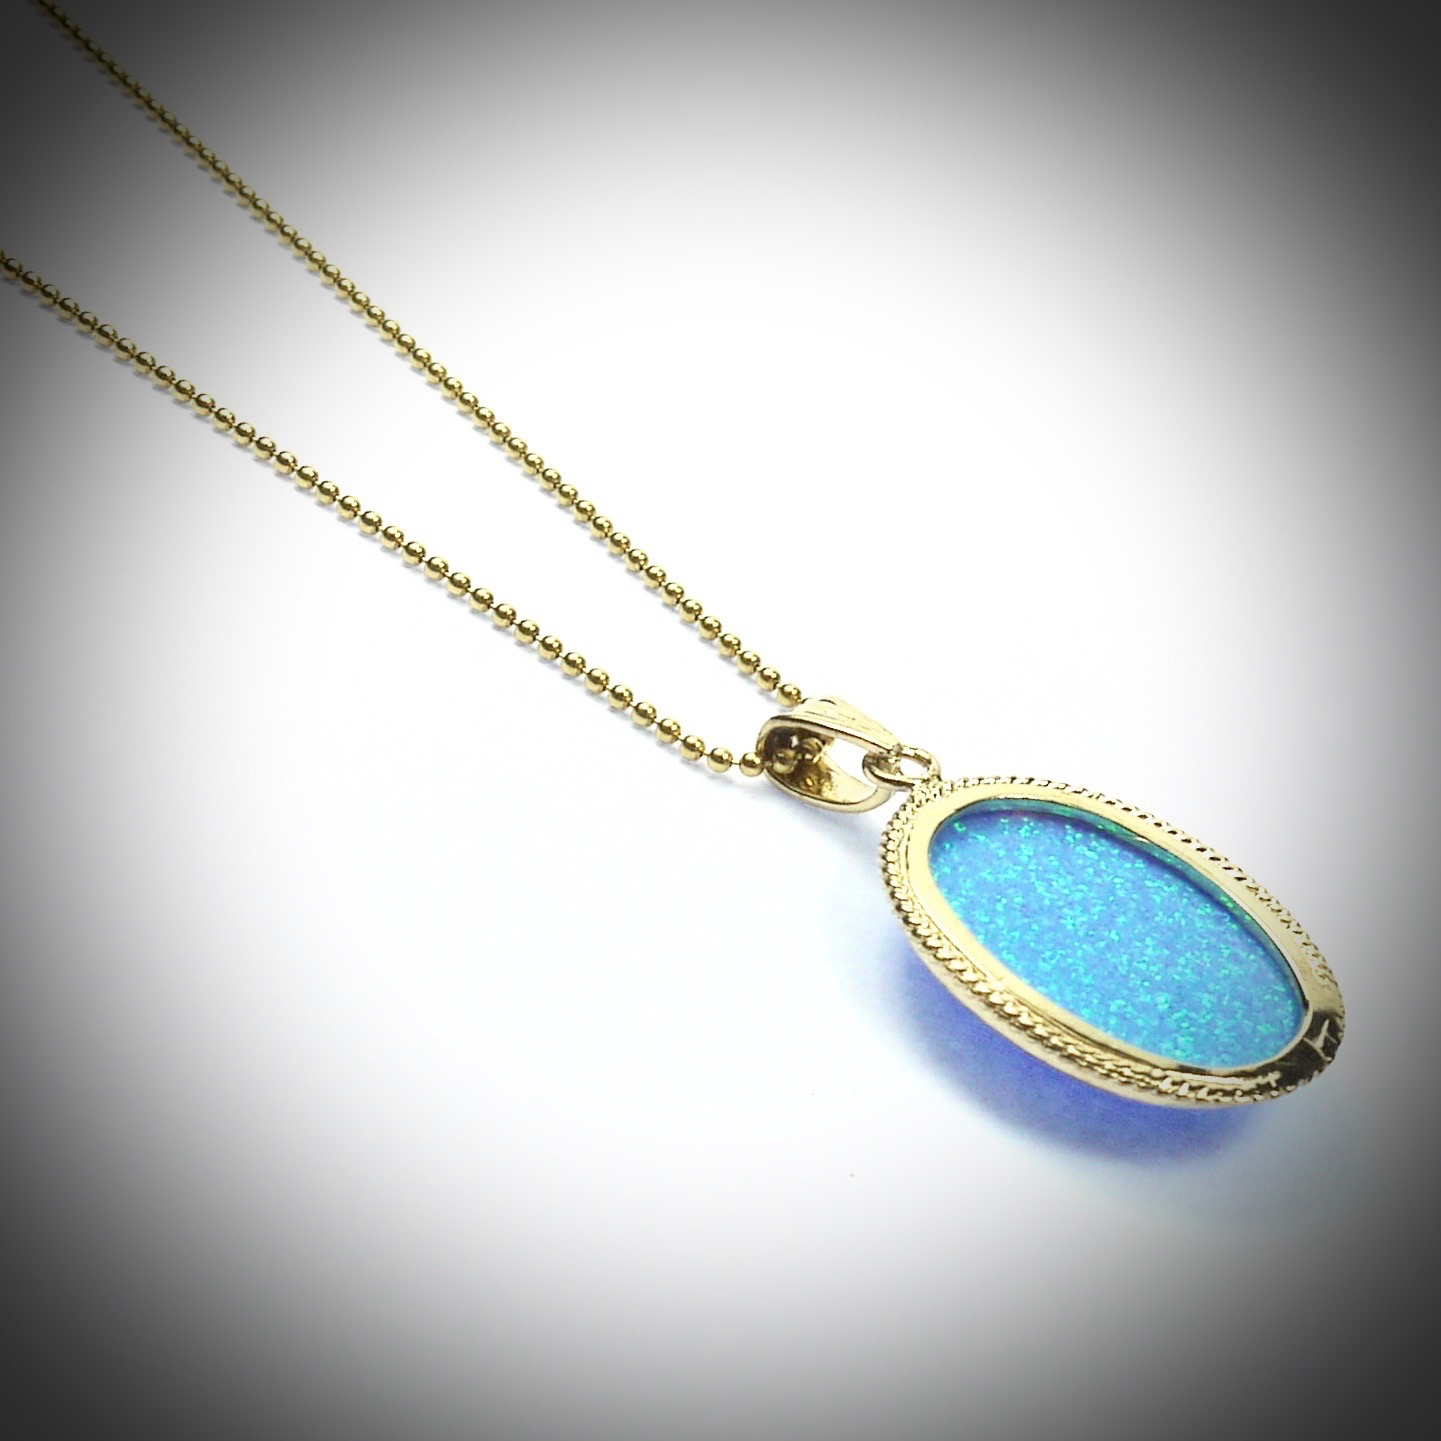 az set pendant b sterling necklace jewelry opal bzl silver solitaire bling round bezel jf blue